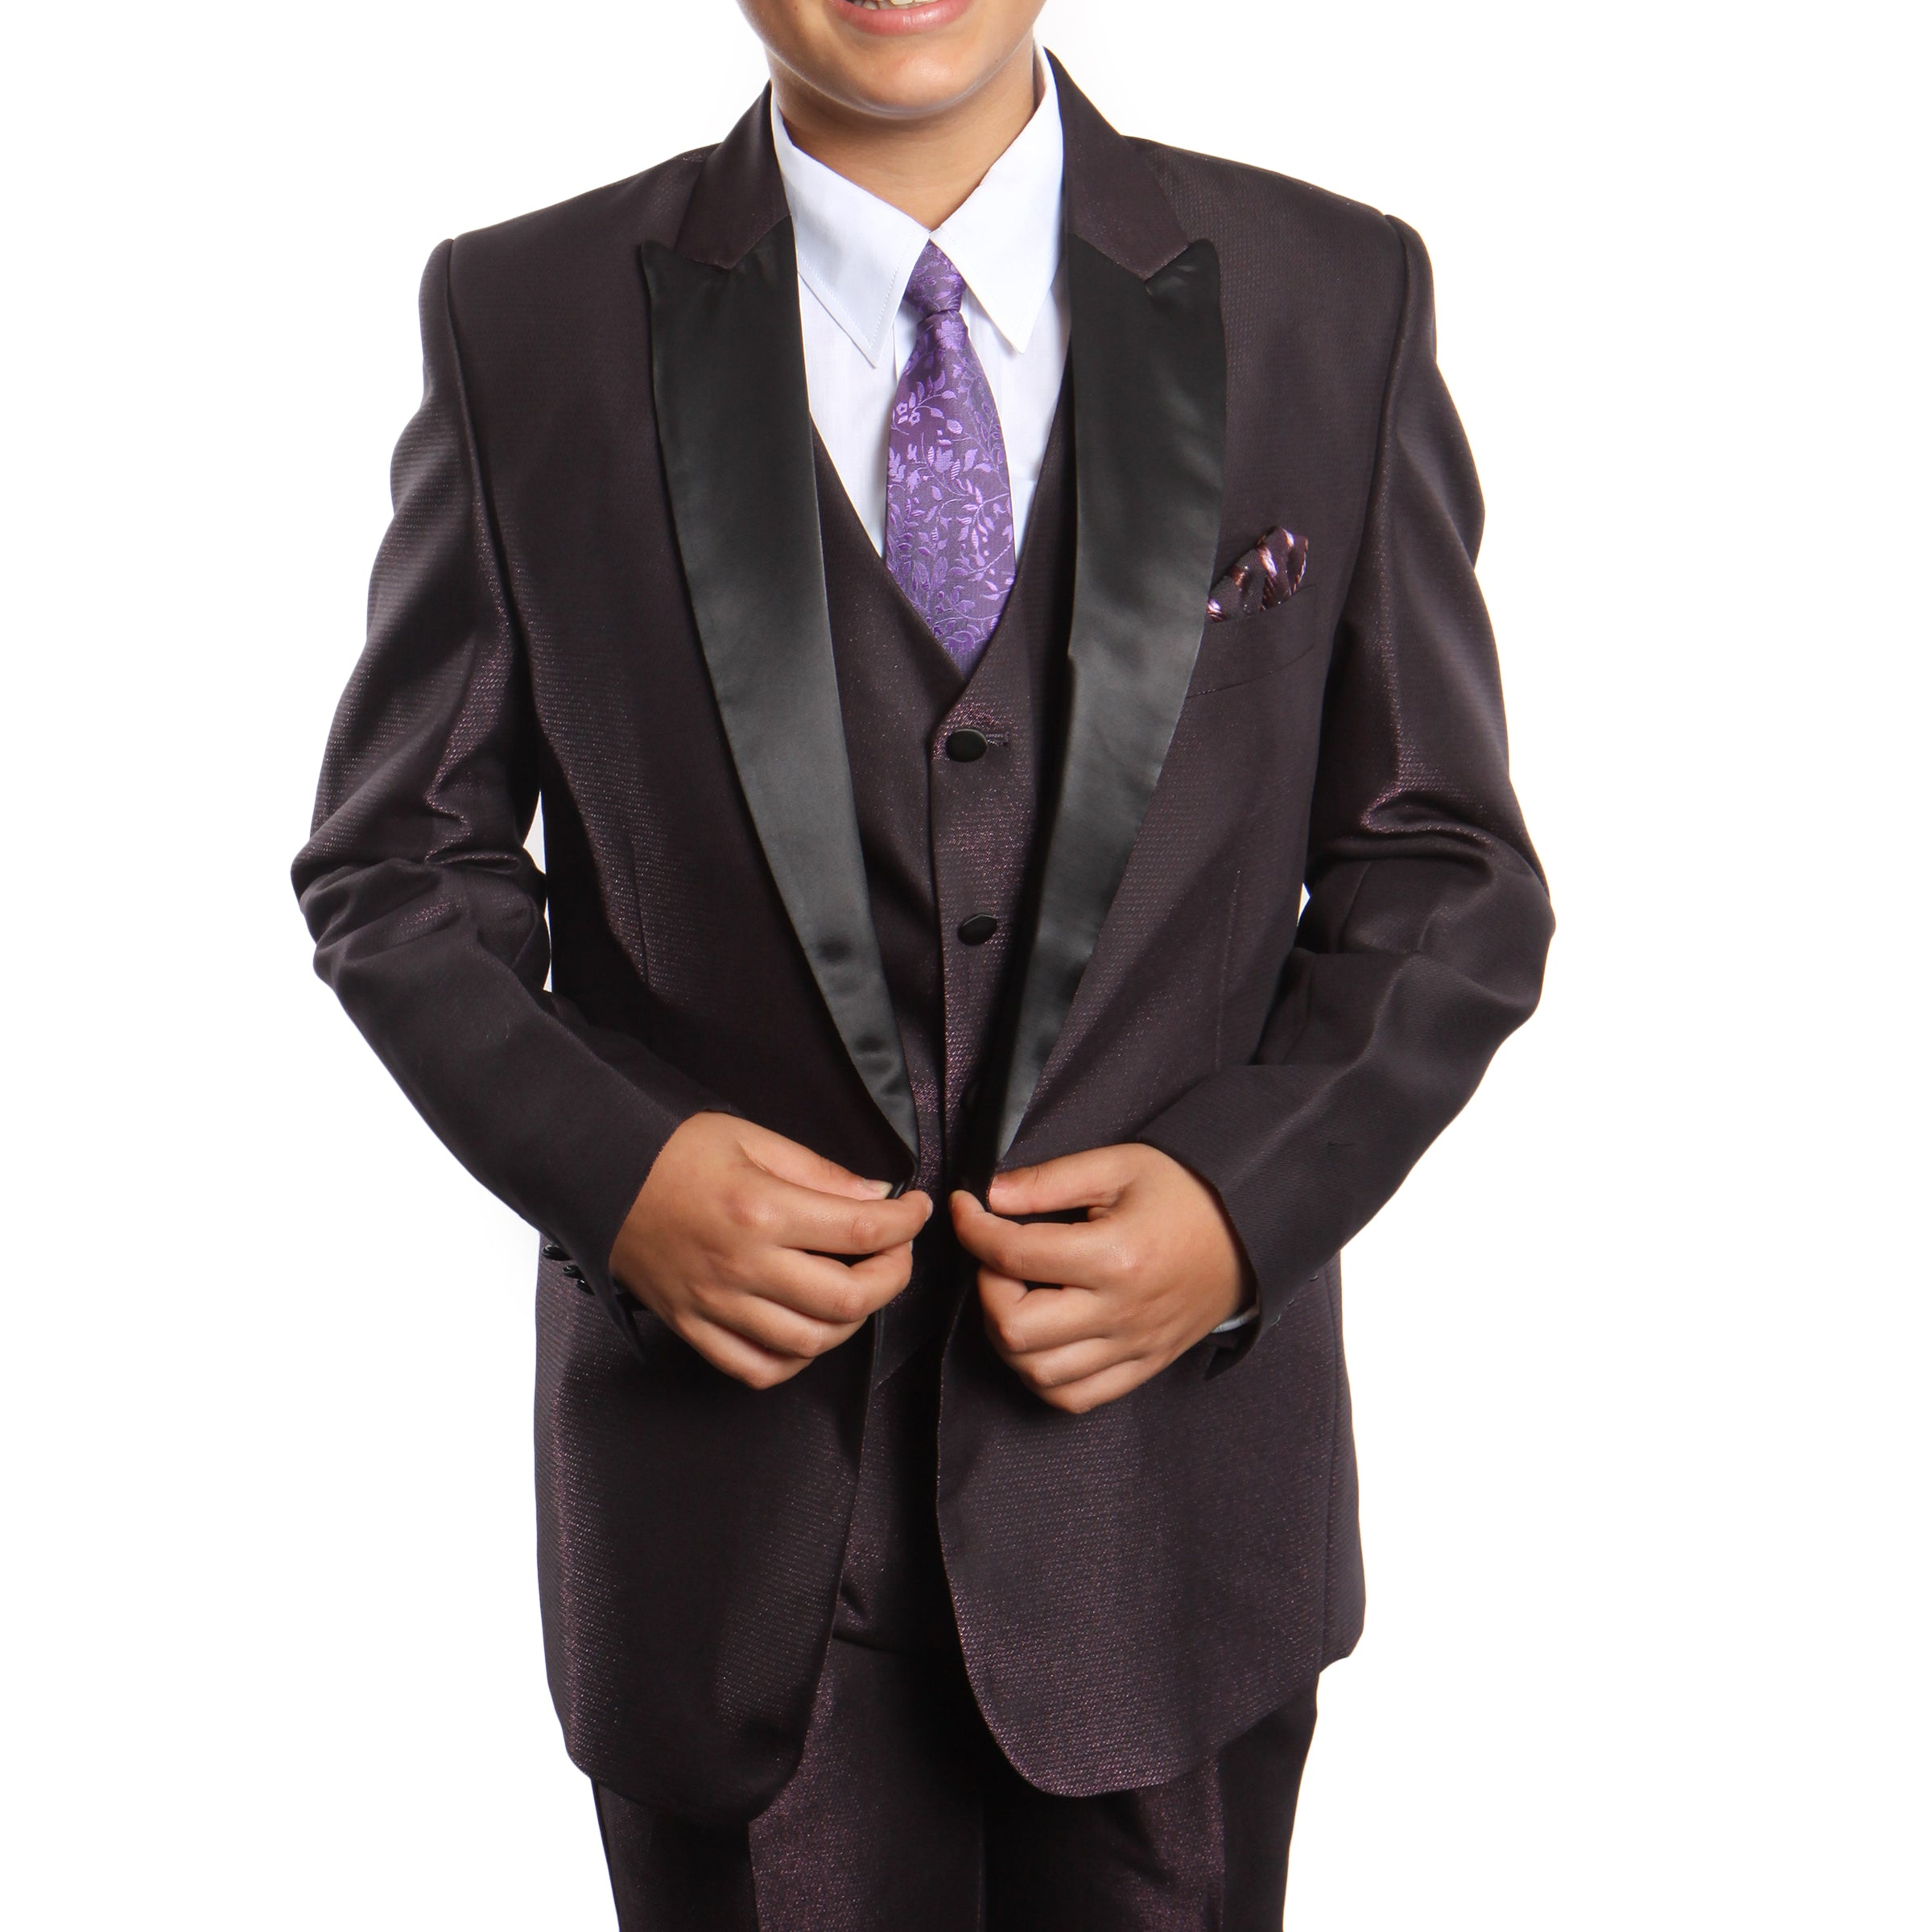 Tazio Plum Formal Suits For Boys